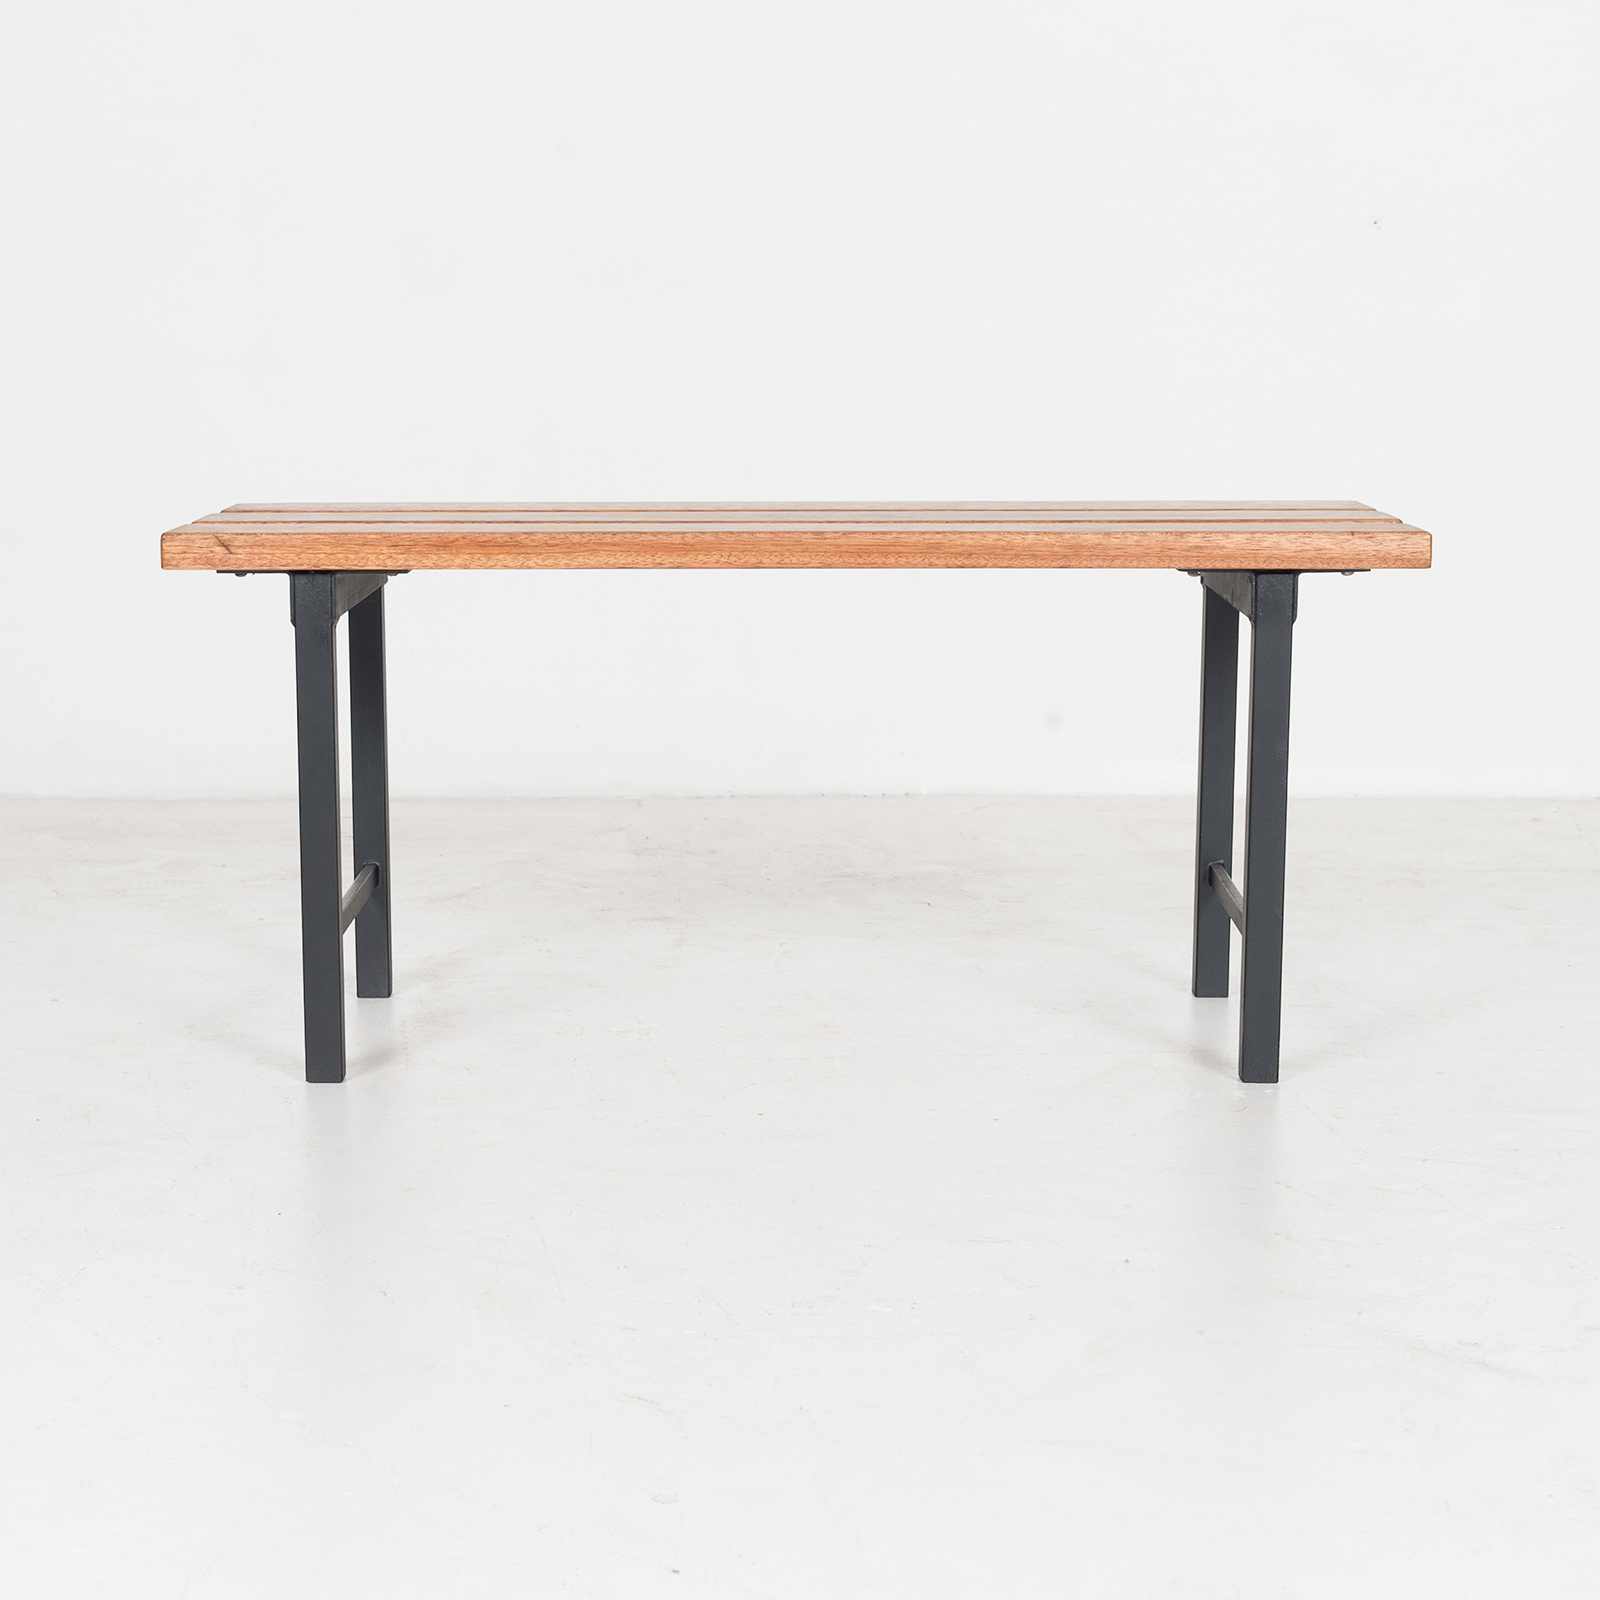 Two Seat Timber And Steel Bench, 1960s, The Netherlands47